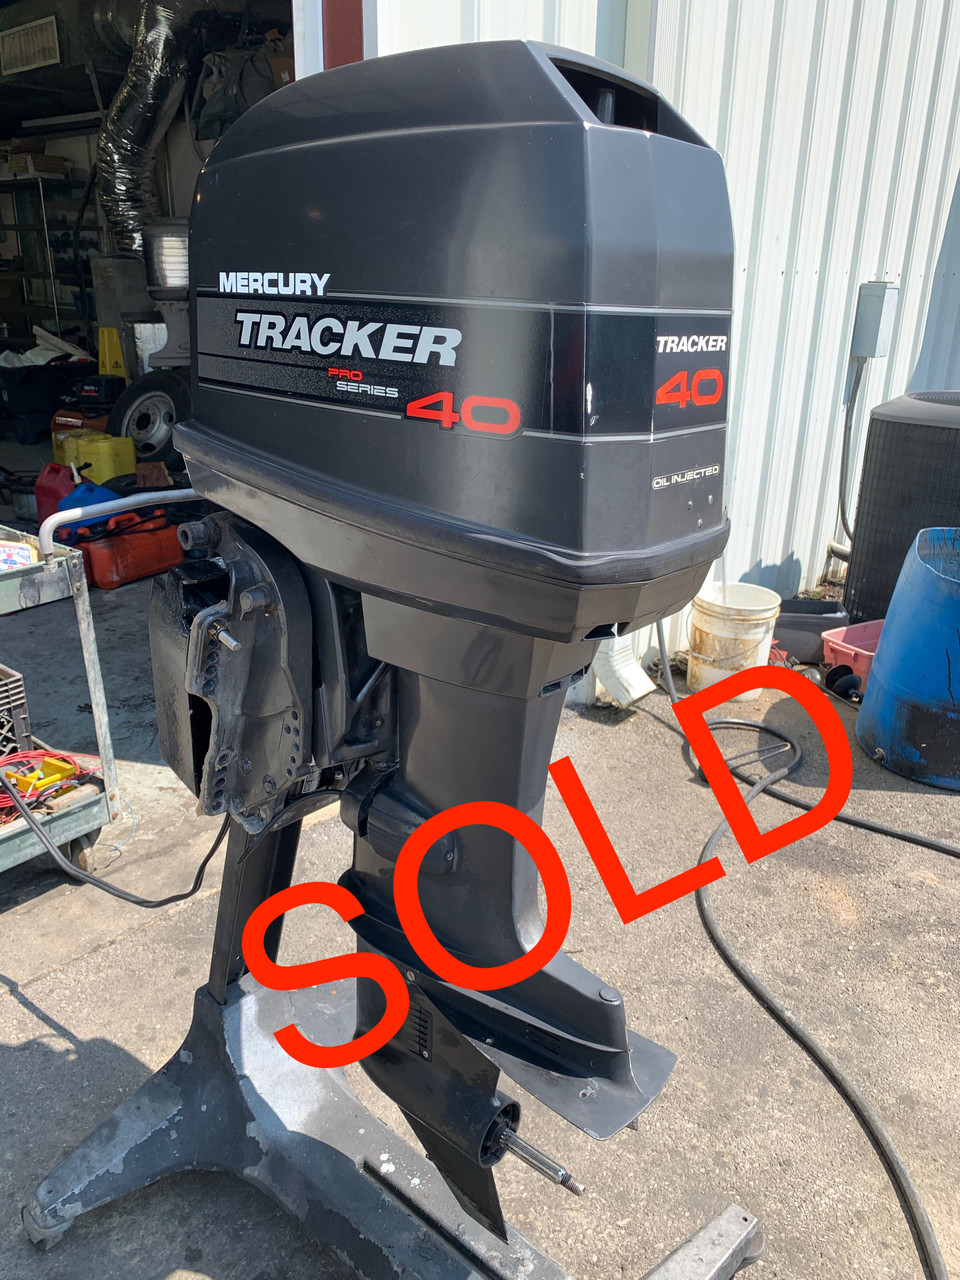 """1995 Mercury Tracker 40 HP Pro Series 4 Cylinder Carbureted 2 Stroke 20"""" (L) Outboard Motor"""